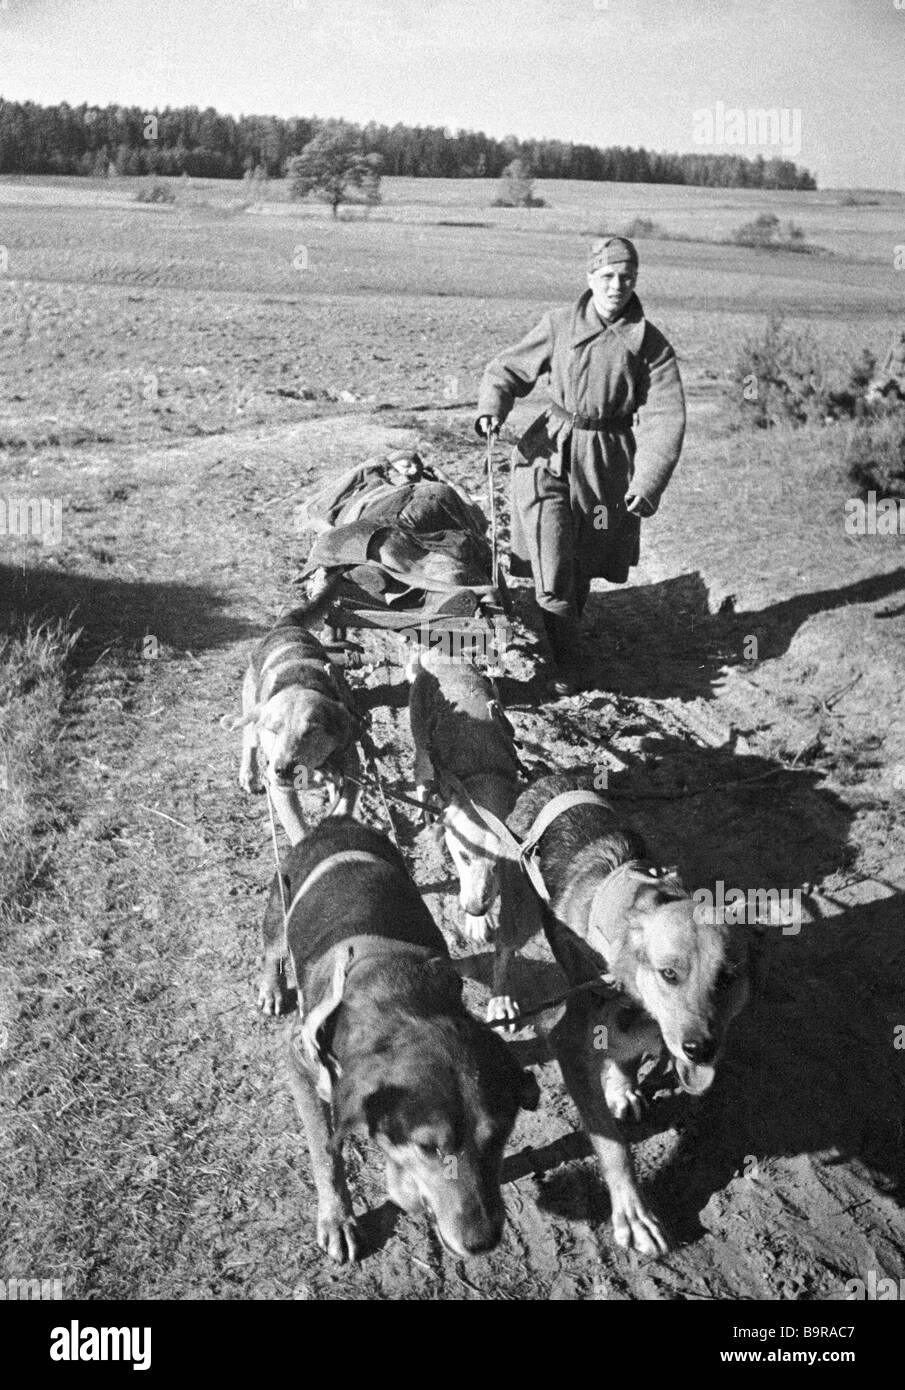 A dog team takes a wounded troop from the battlefield - Stock Image